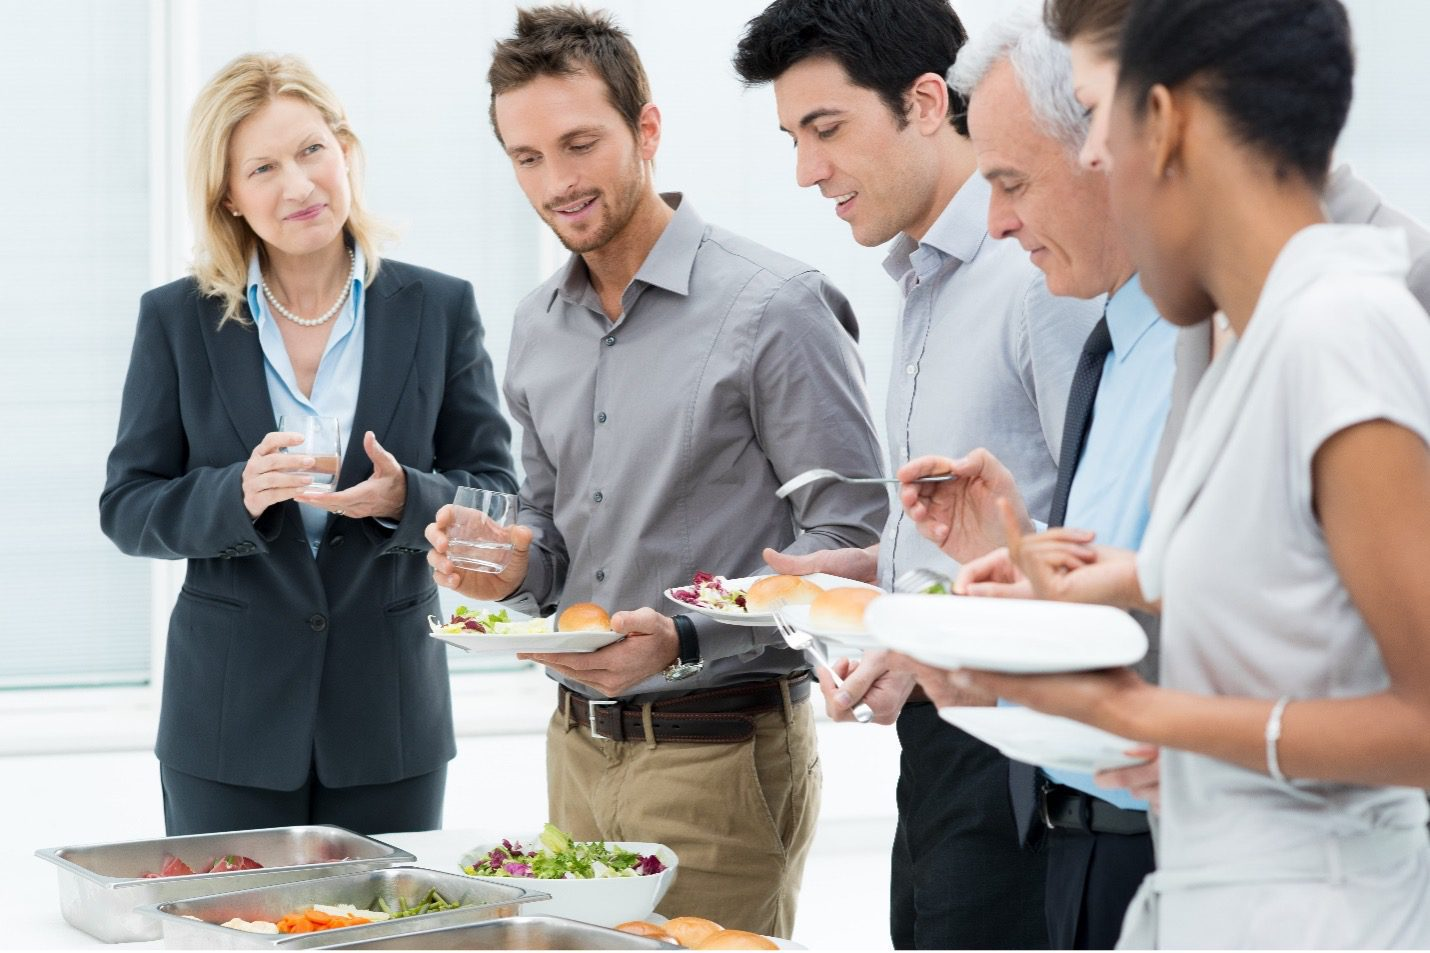 people gathered, event buffet. -- GetFound Events for New Business Locations, Startup, and Promotion